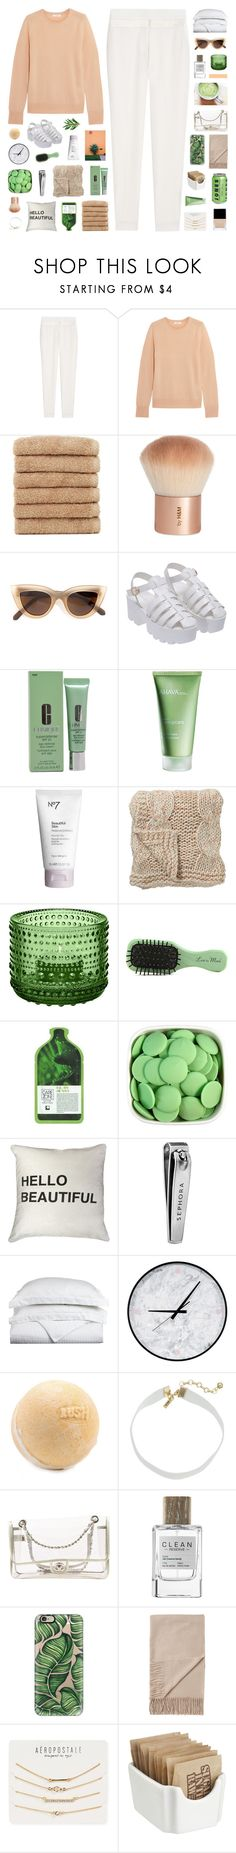 """""""all you wanna do is talk ;"""" by ughtara ❤ liked on Polyvore featuring Alexander Wang, Equipment, Linum Home Textiles, H&M, Quay, Clinique, Ahava, Boots No7, Bloomingville and iittala"""